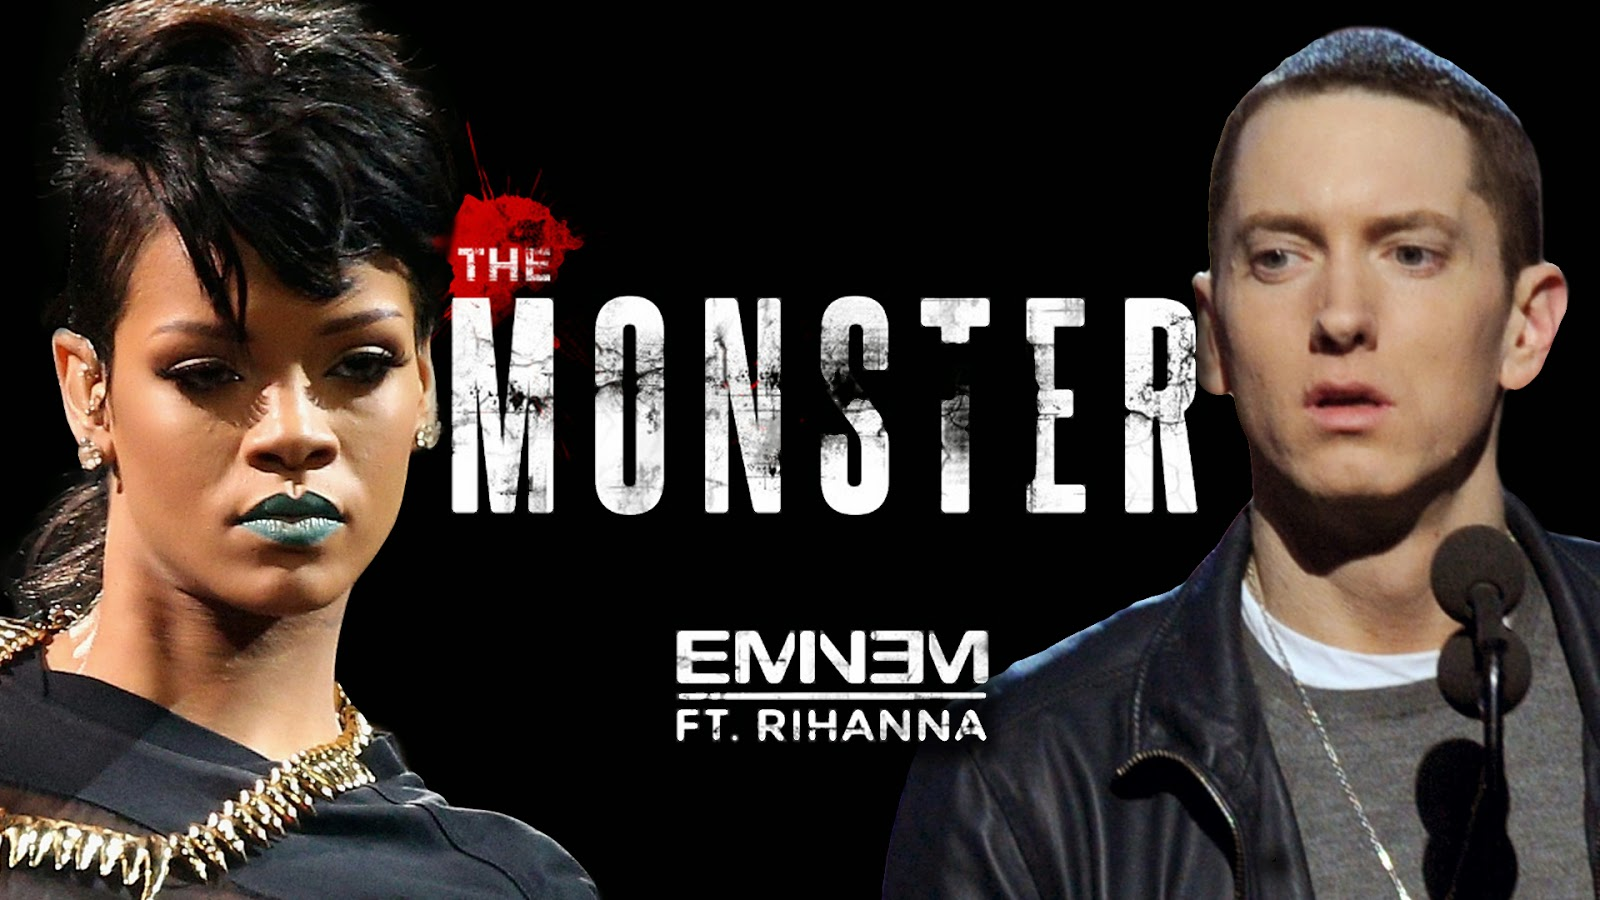 Eminem ft. Rihanna – The Monster (Lyrics)